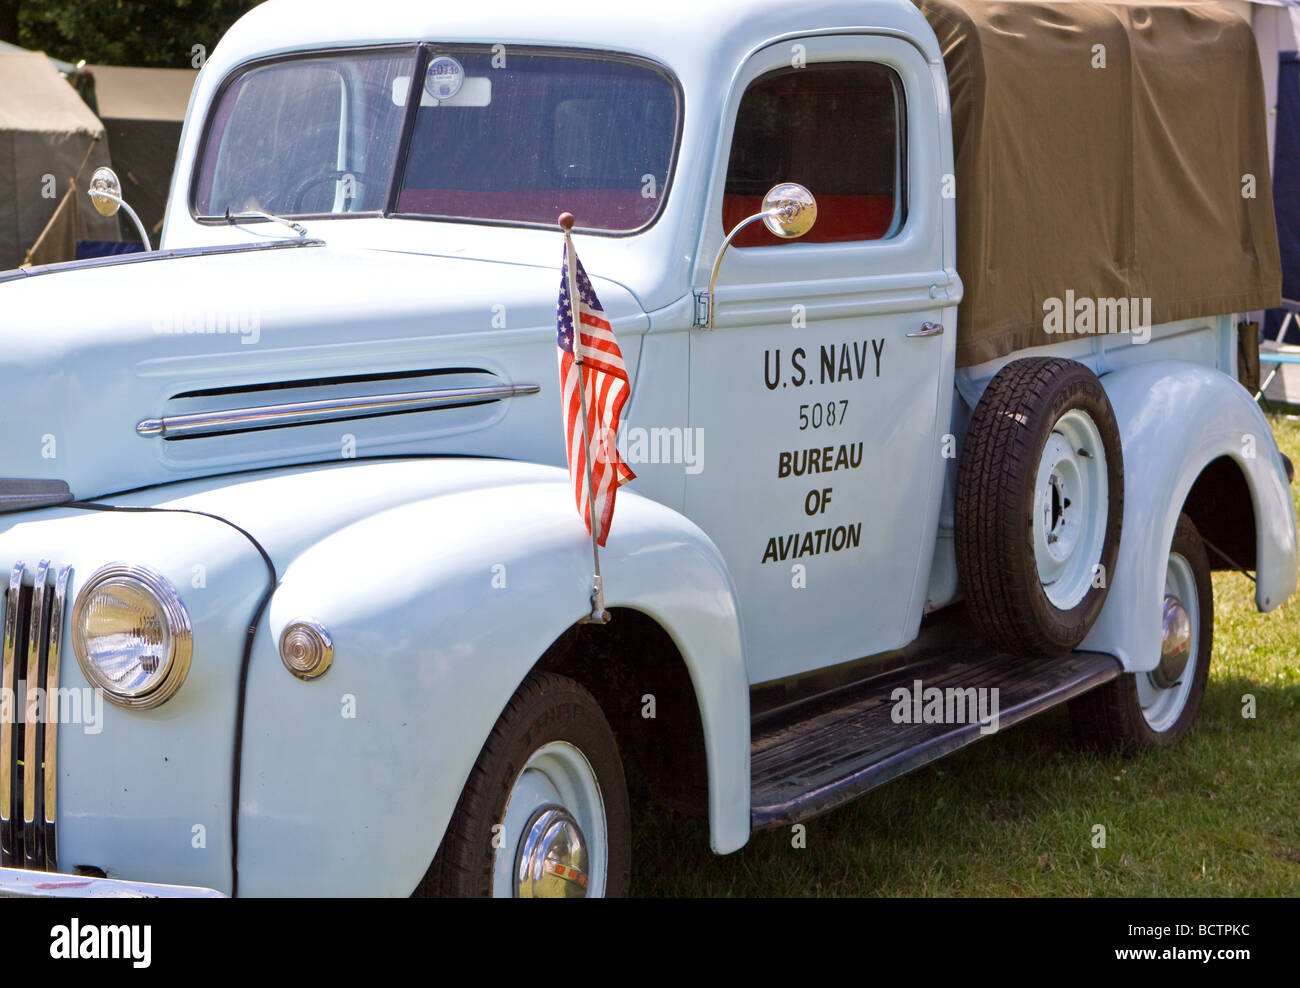 Navy Bureau of Aviation Truck - Stock Image